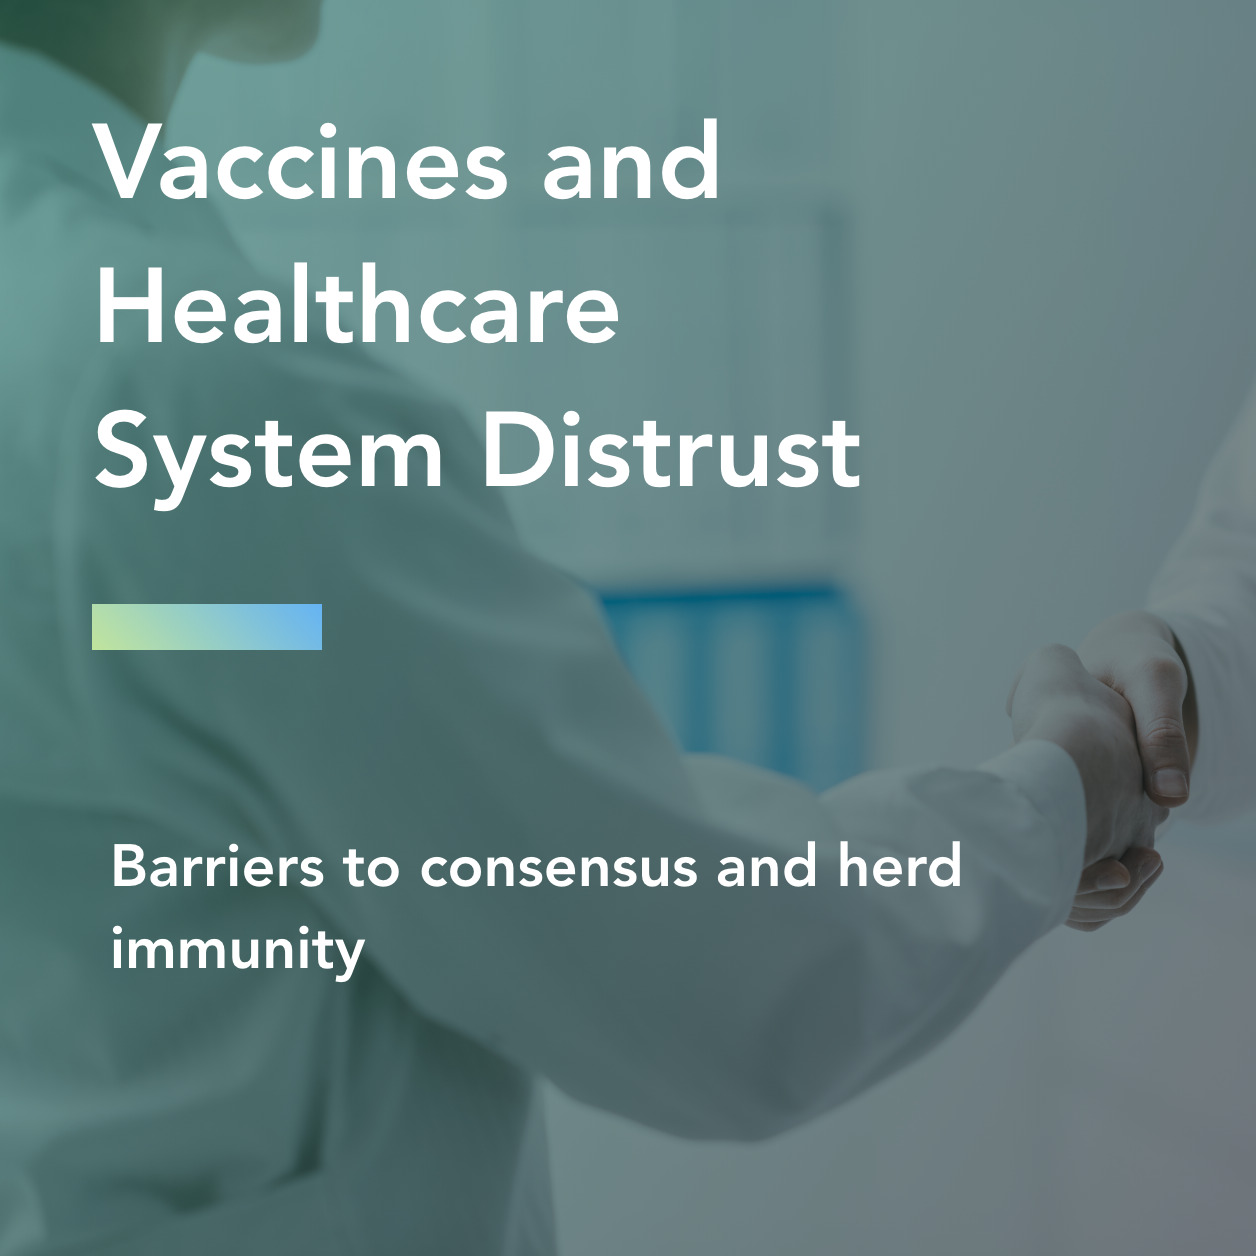 vaccines and healthcare distrust title